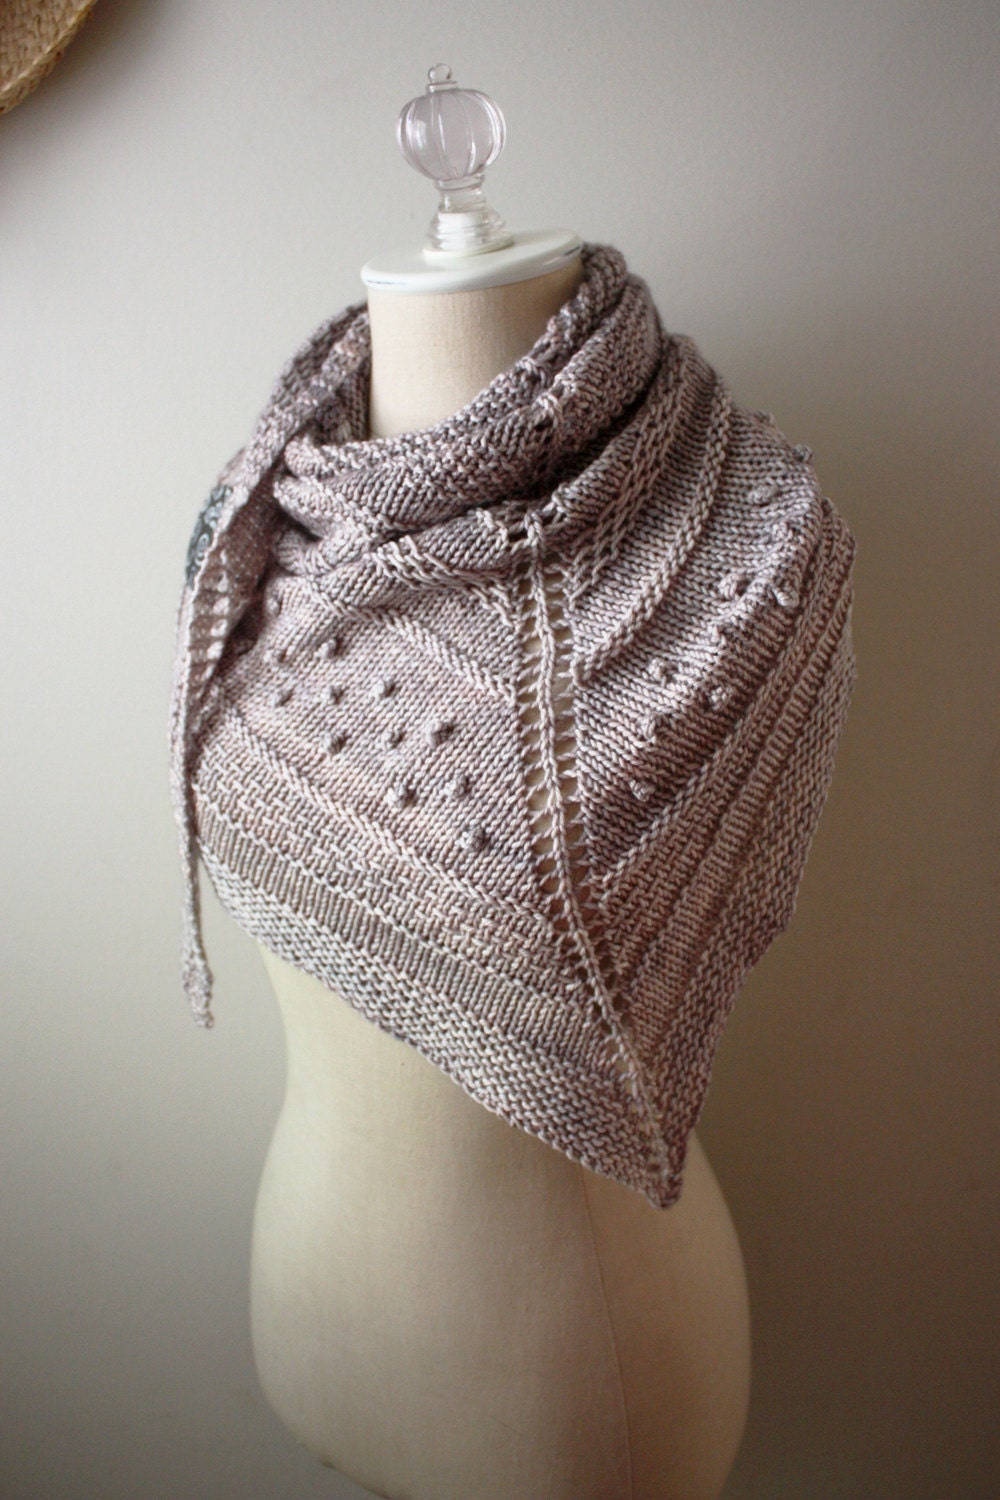 Knitting Patterns For Chunky Weight Yarn : Shawl Knitting Pattern / Chunky Textured Knit DK Weight Yarn